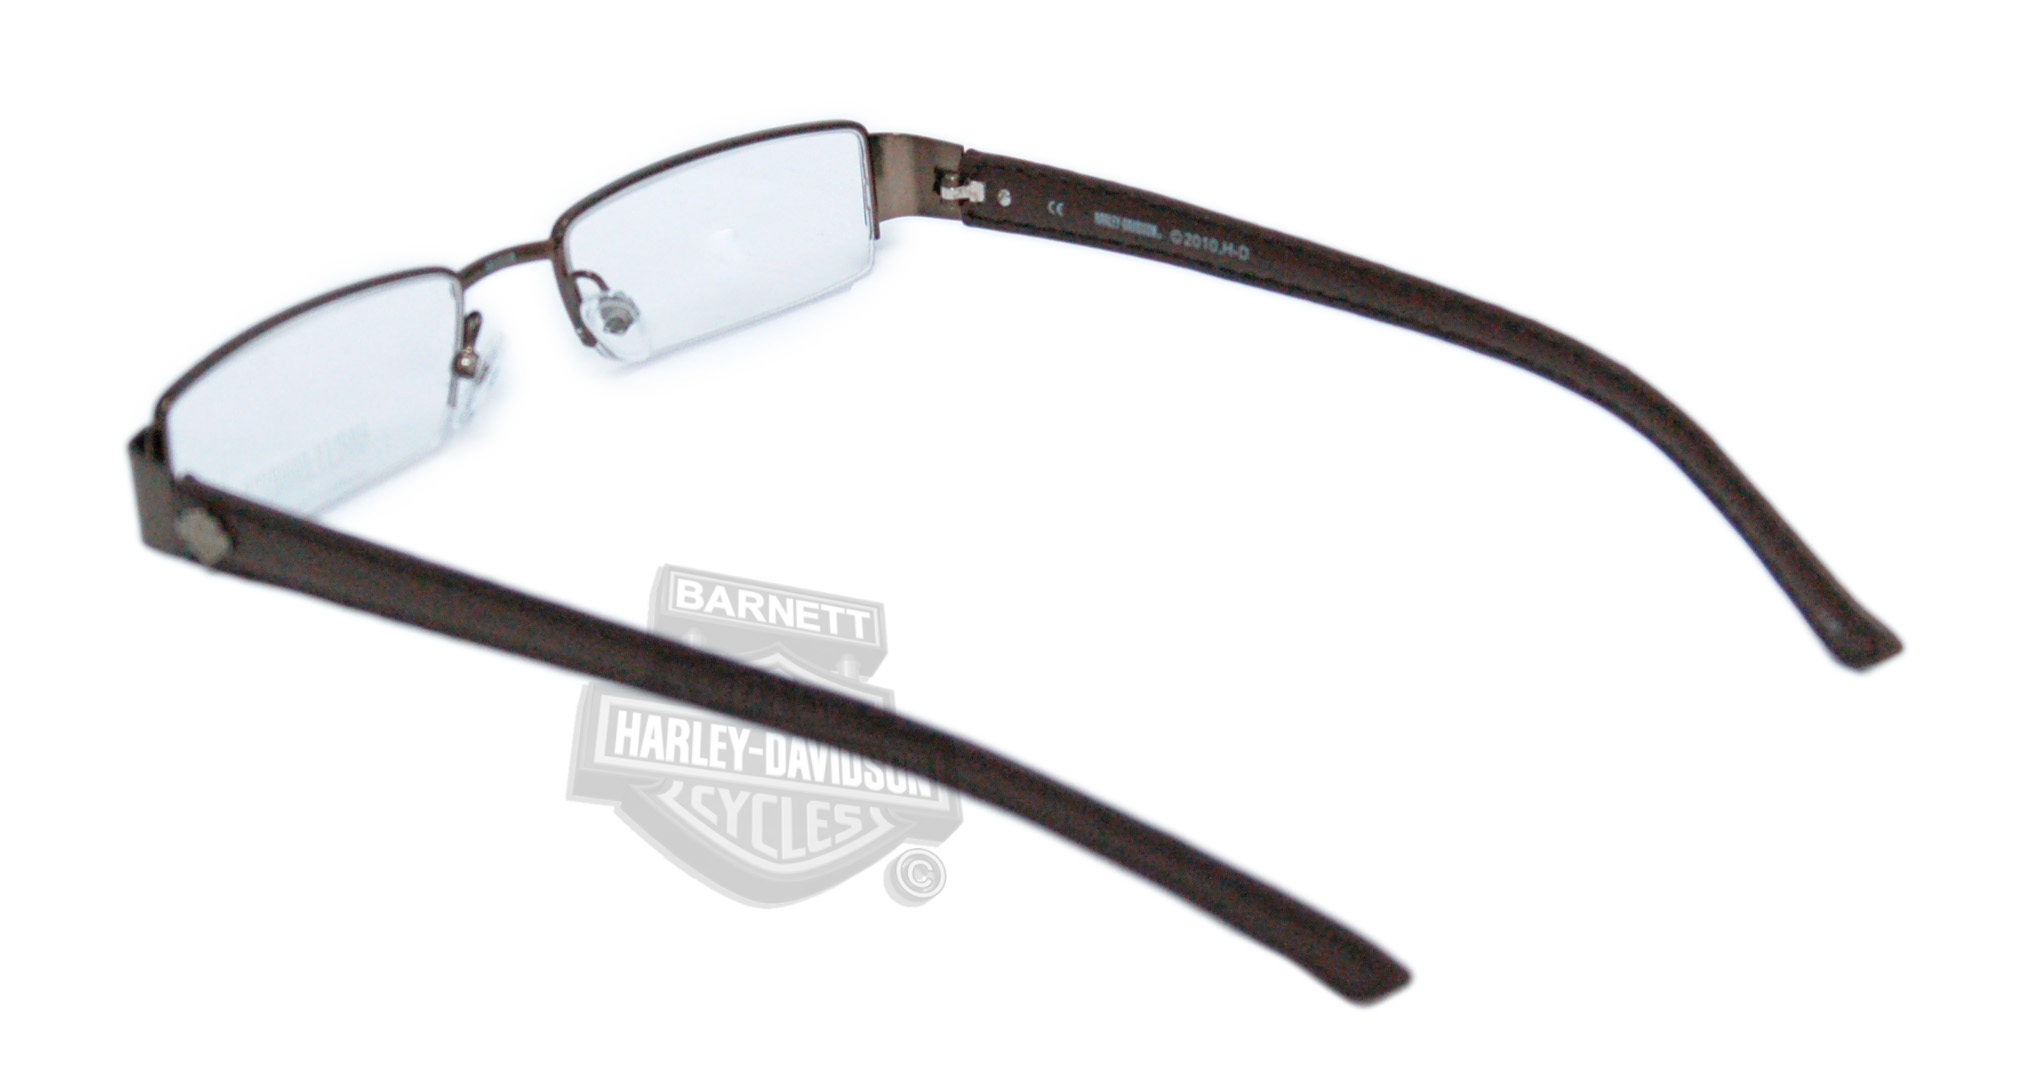 harley davidson hd3006brn brown frame reading glasses by viva eyewear hd3006brn